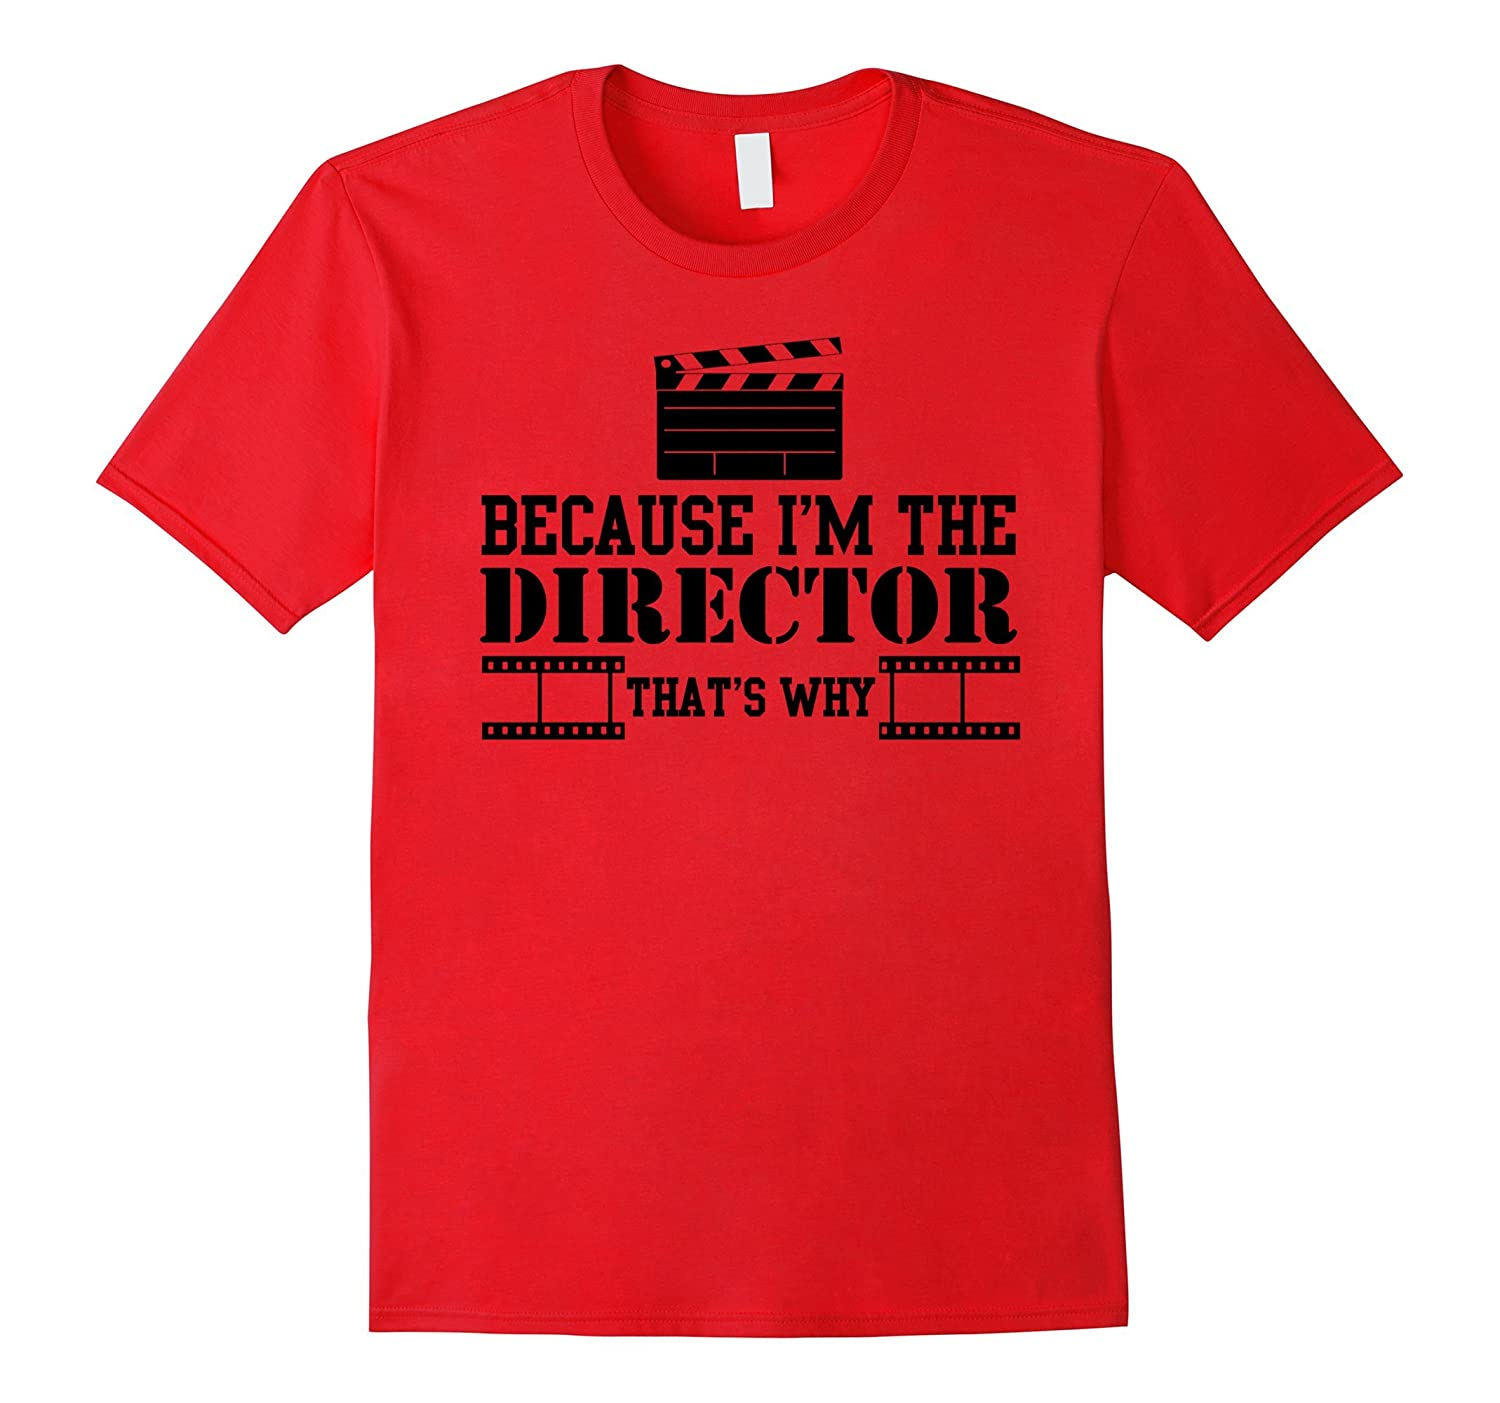 Because I'm The Director T-Shirt - That's Why Funny Gift-FL